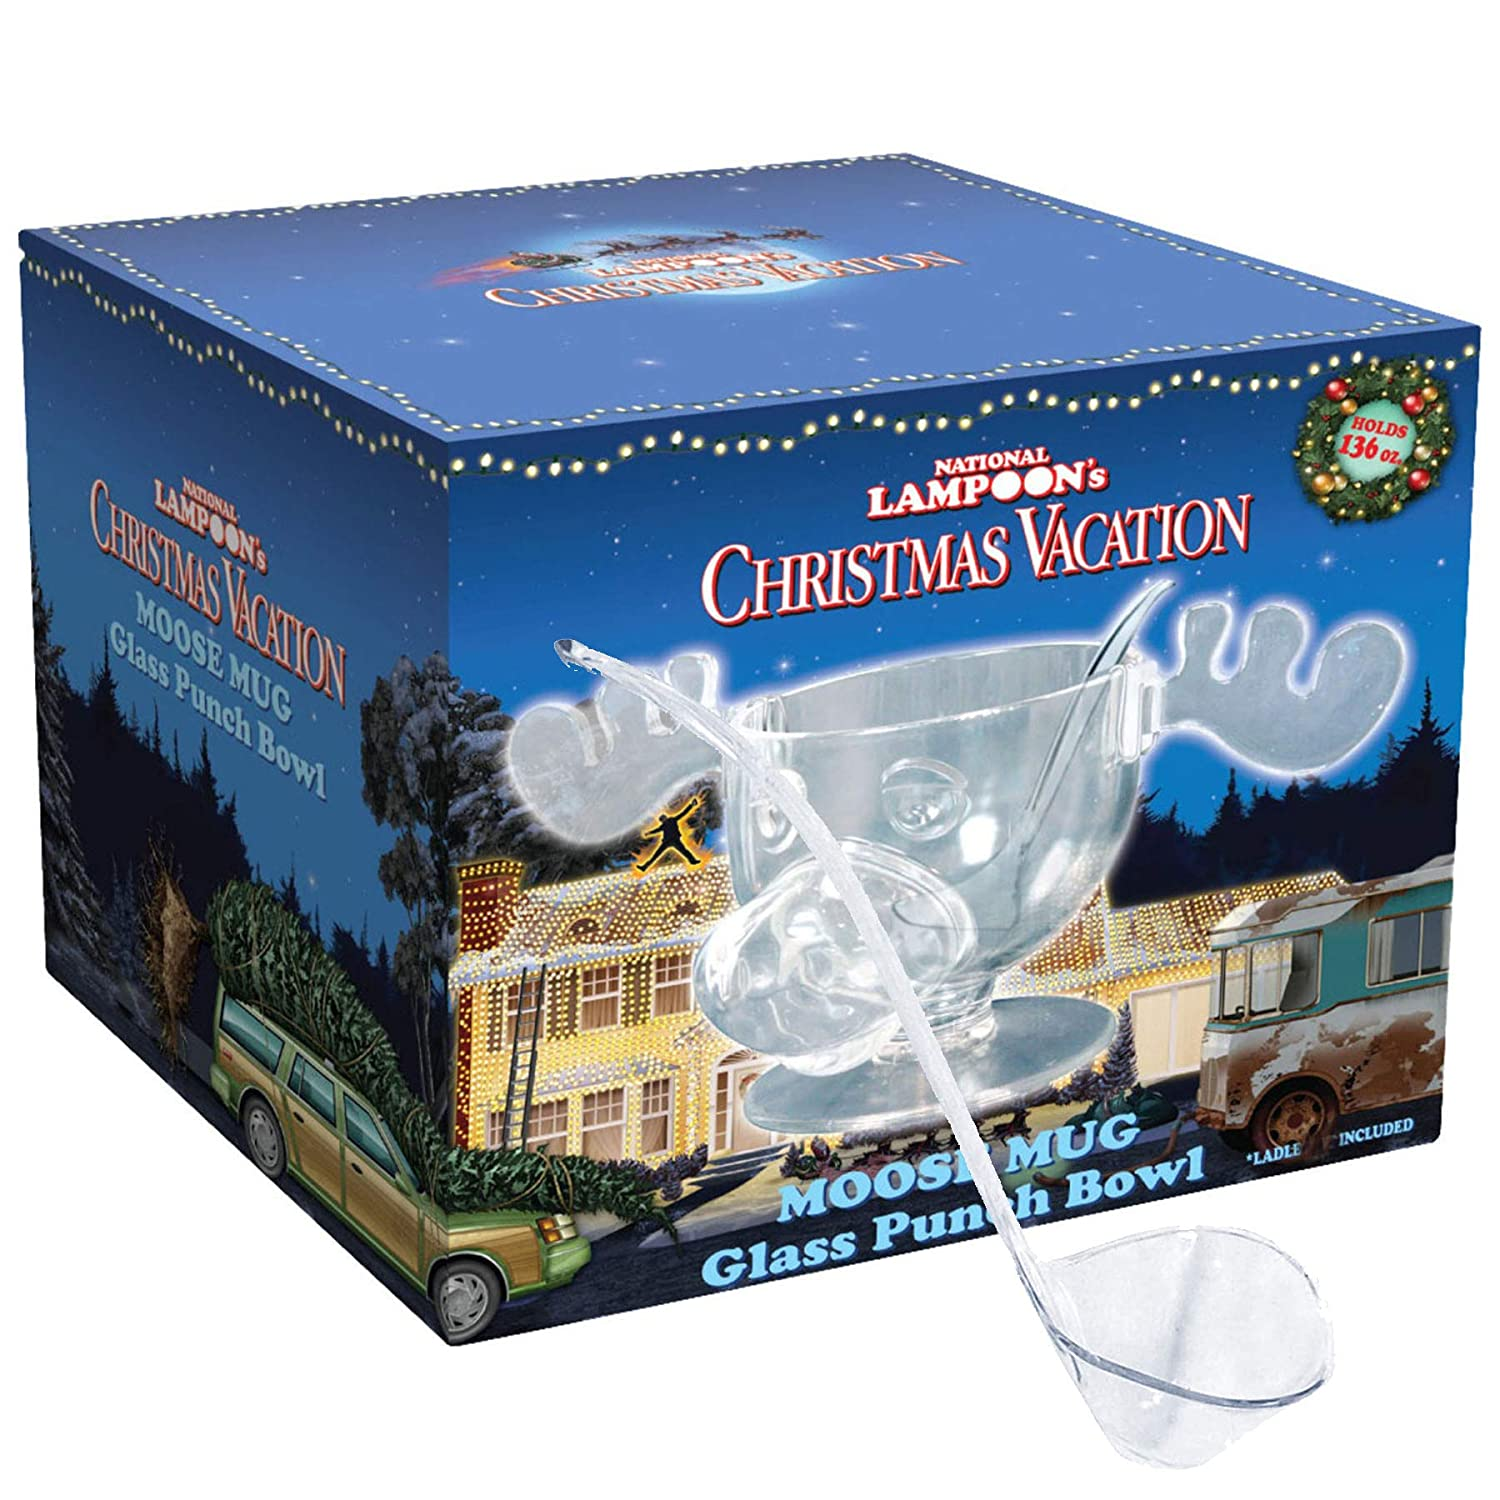 Christmas Vacation moose mug, 3.8litres, glassware, punch bowl with ladle, Griswold family 3.8litres ctc